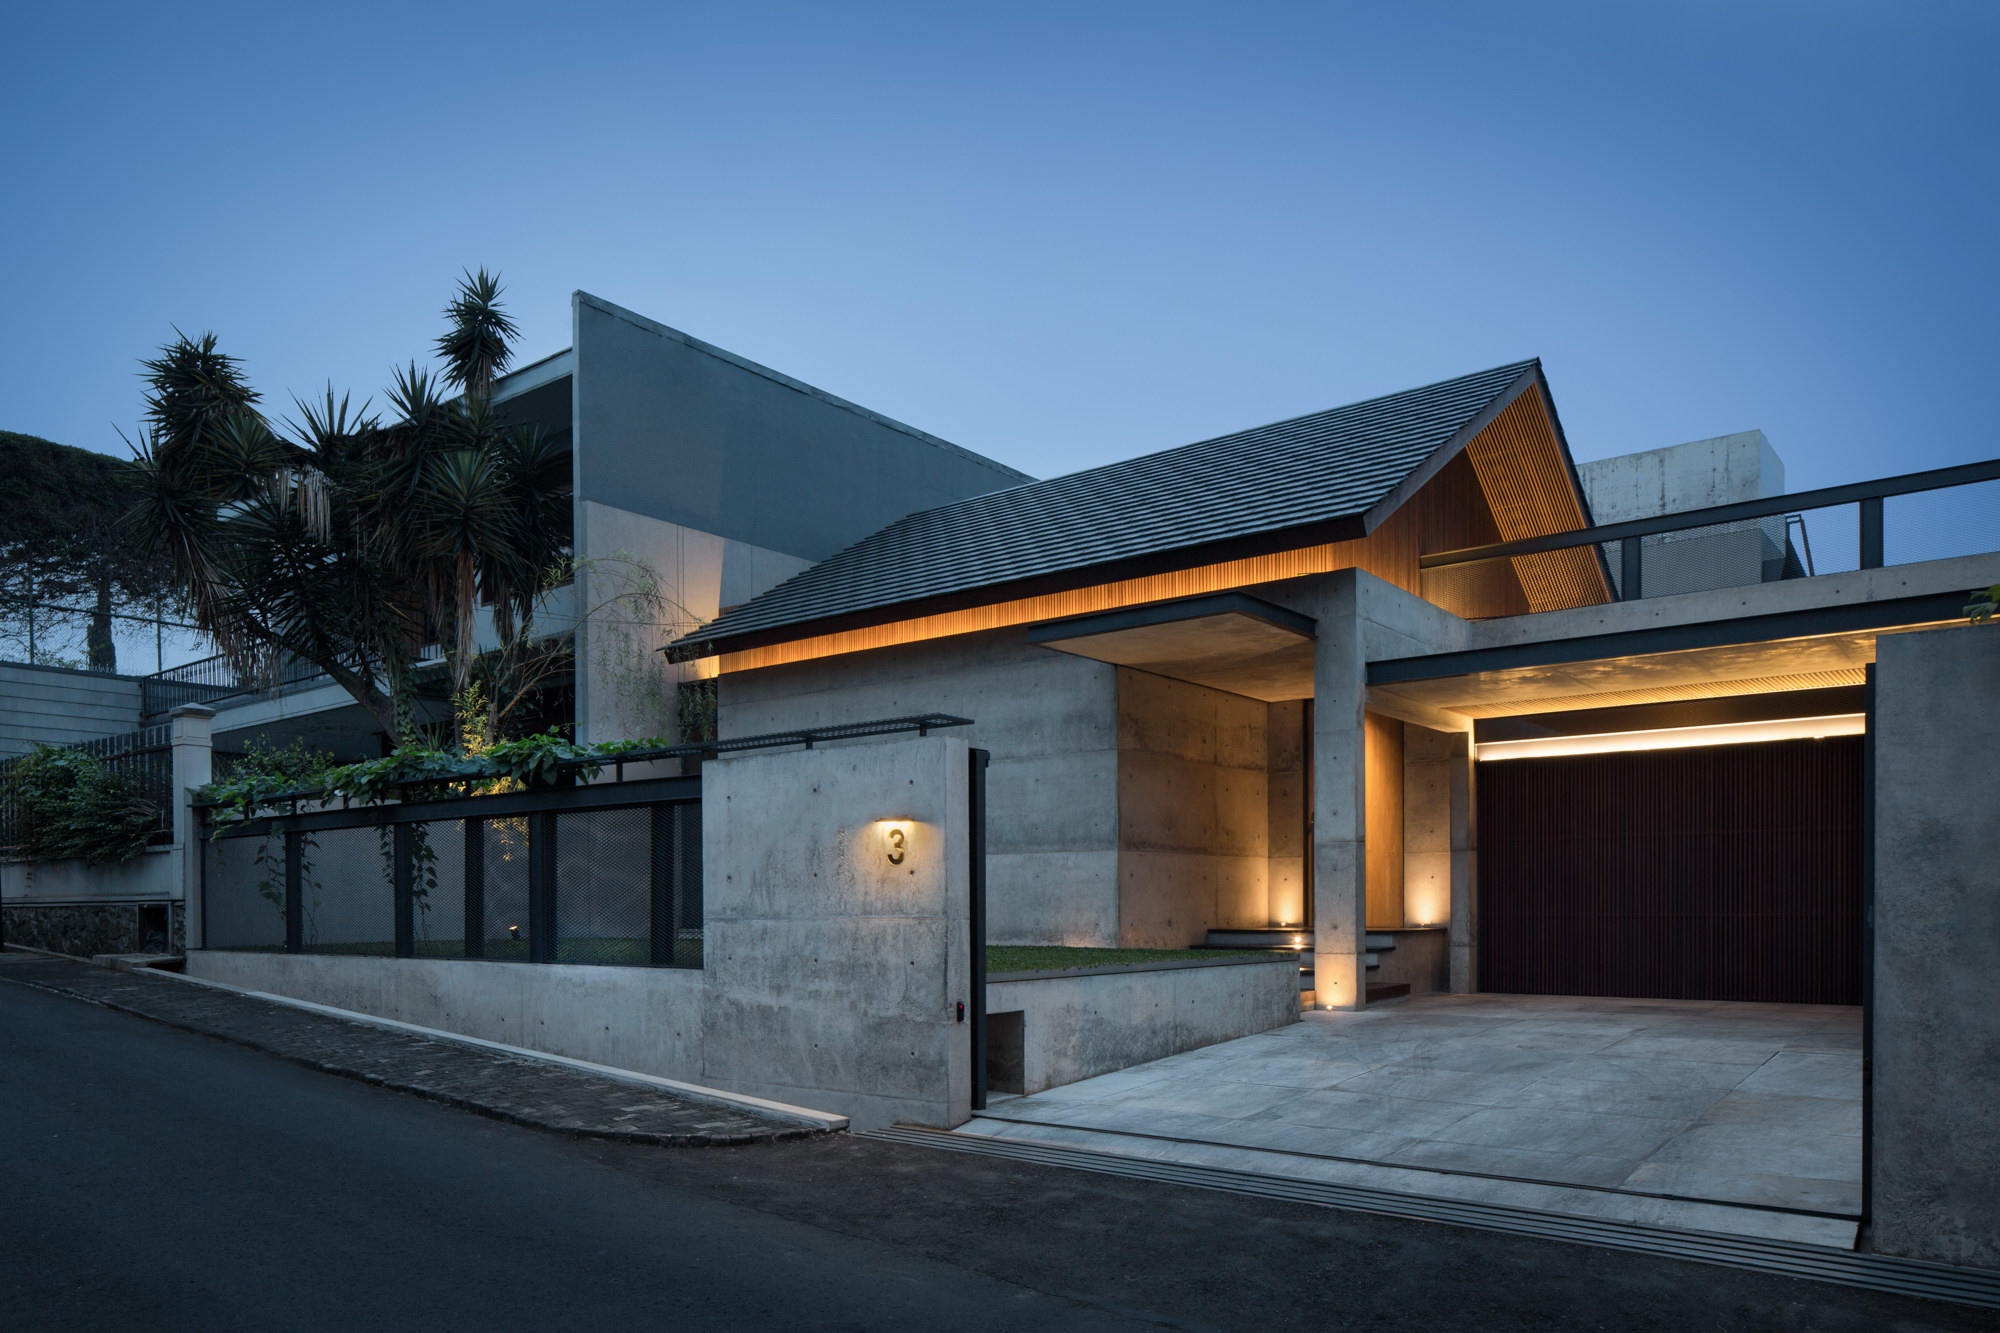 Hikari House by Pranala Associates